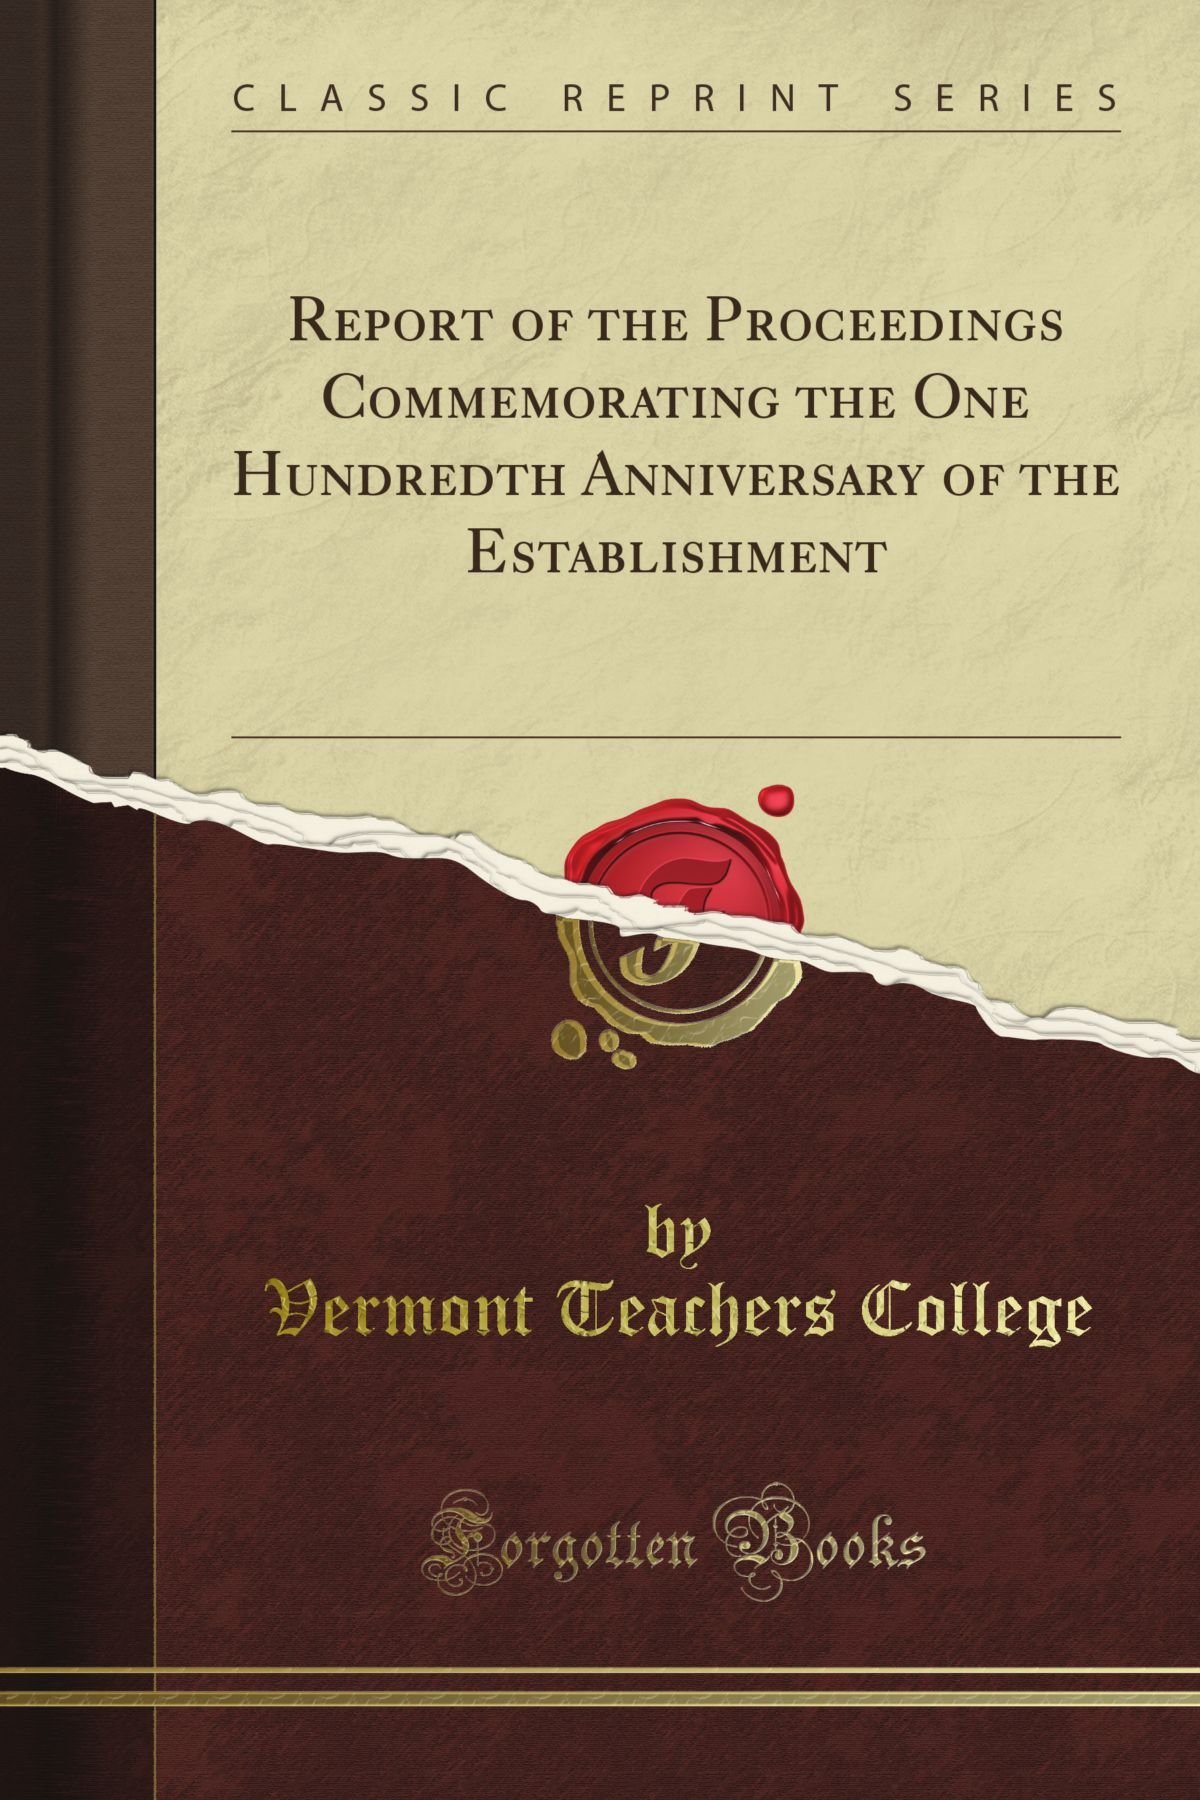 Report of the Proceedings Commemorating the One Hundredth Anniversary of the Establishment (Classic Reprint) pdf